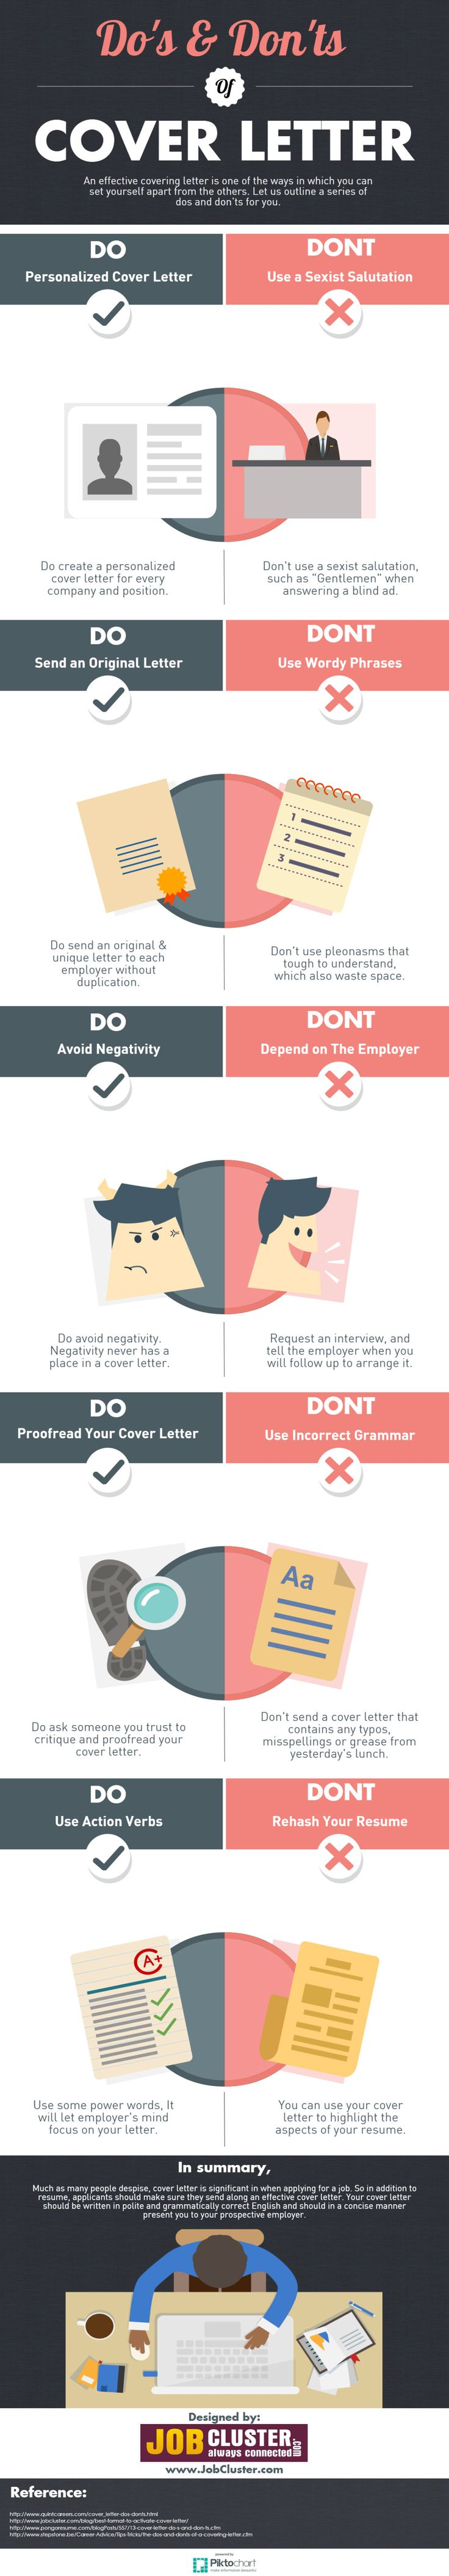 dos and donts of coverletter infographic careers get your dream job - When To Send A Cover Letter